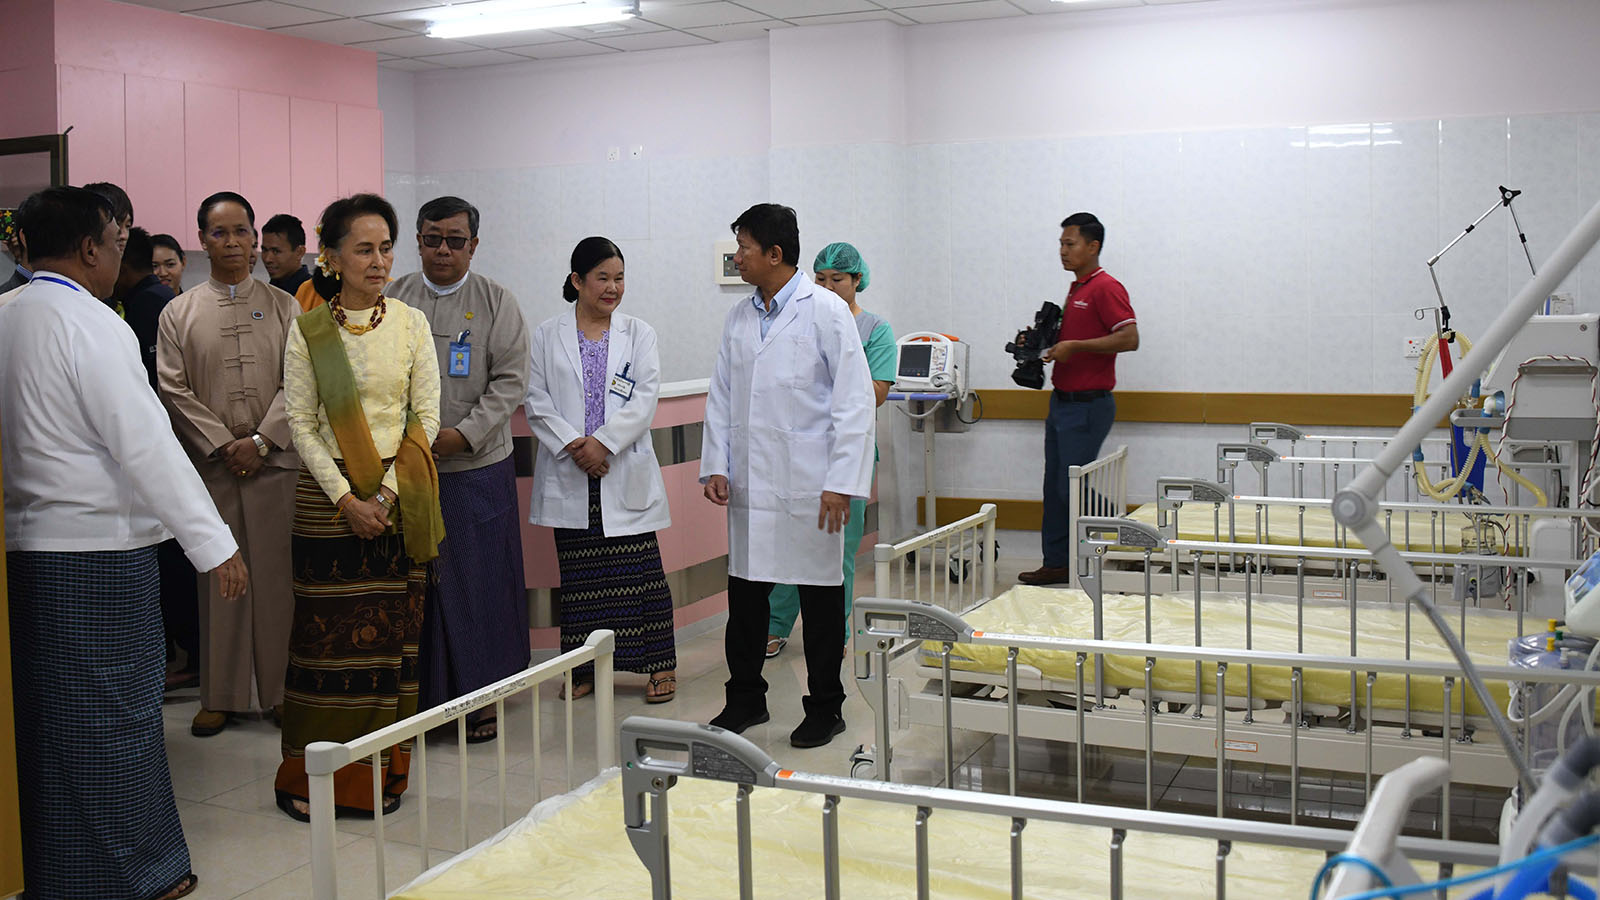 State Counsellor Daw Aung San Suu Kyi inspects the Lashio General Hospital.Photo: MNA